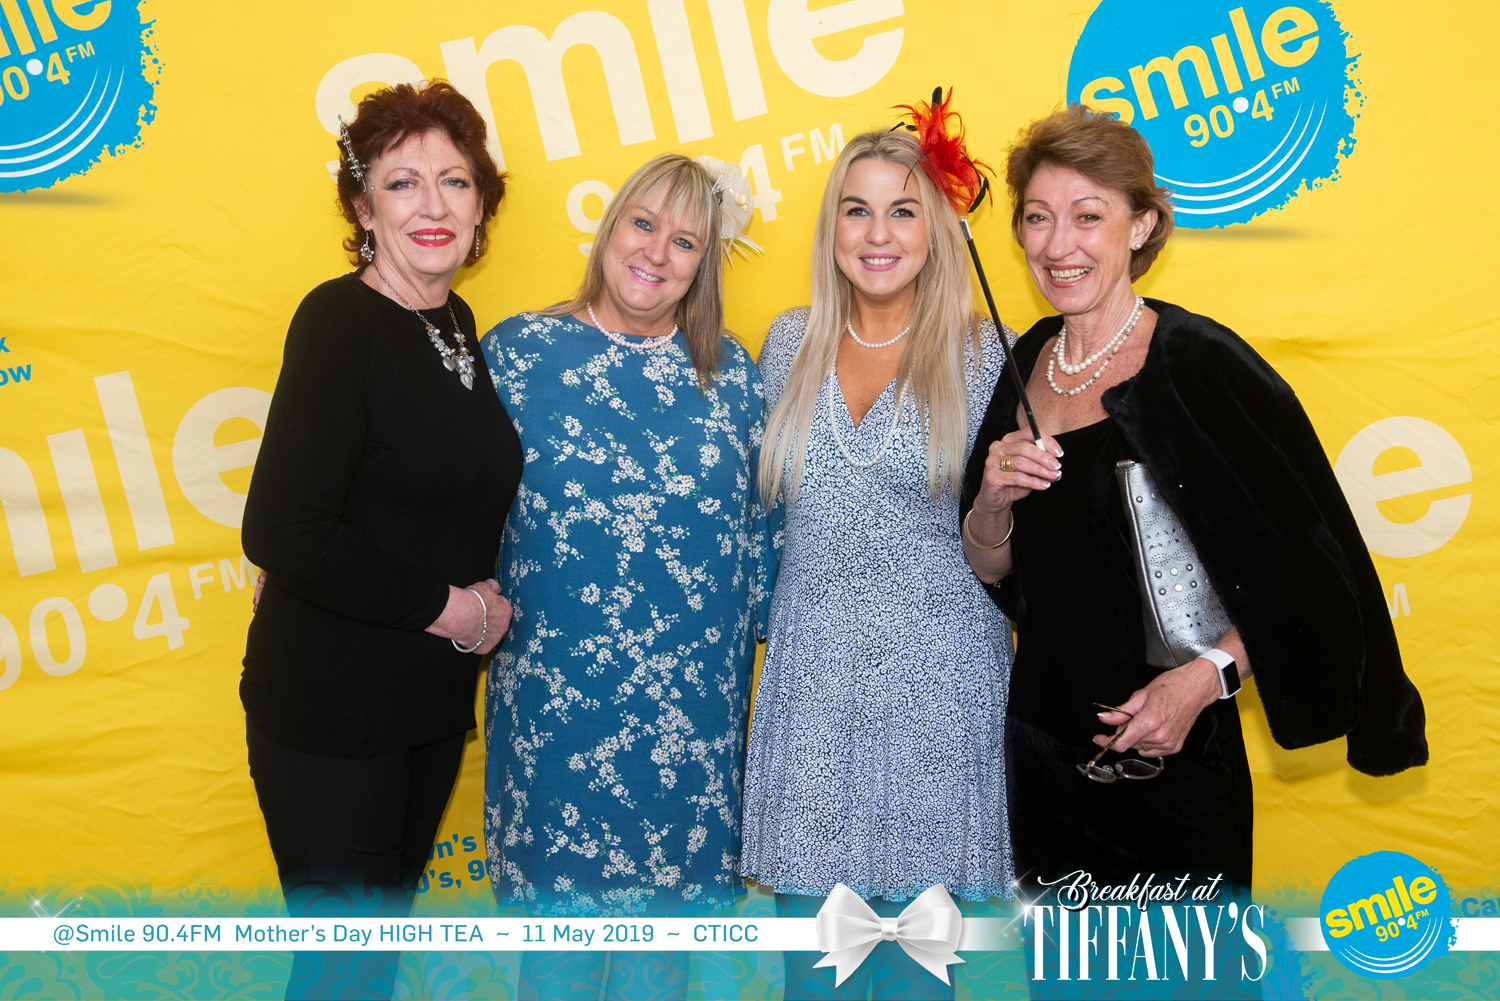 Smile 90.4FM Breakfast at Tiffany's